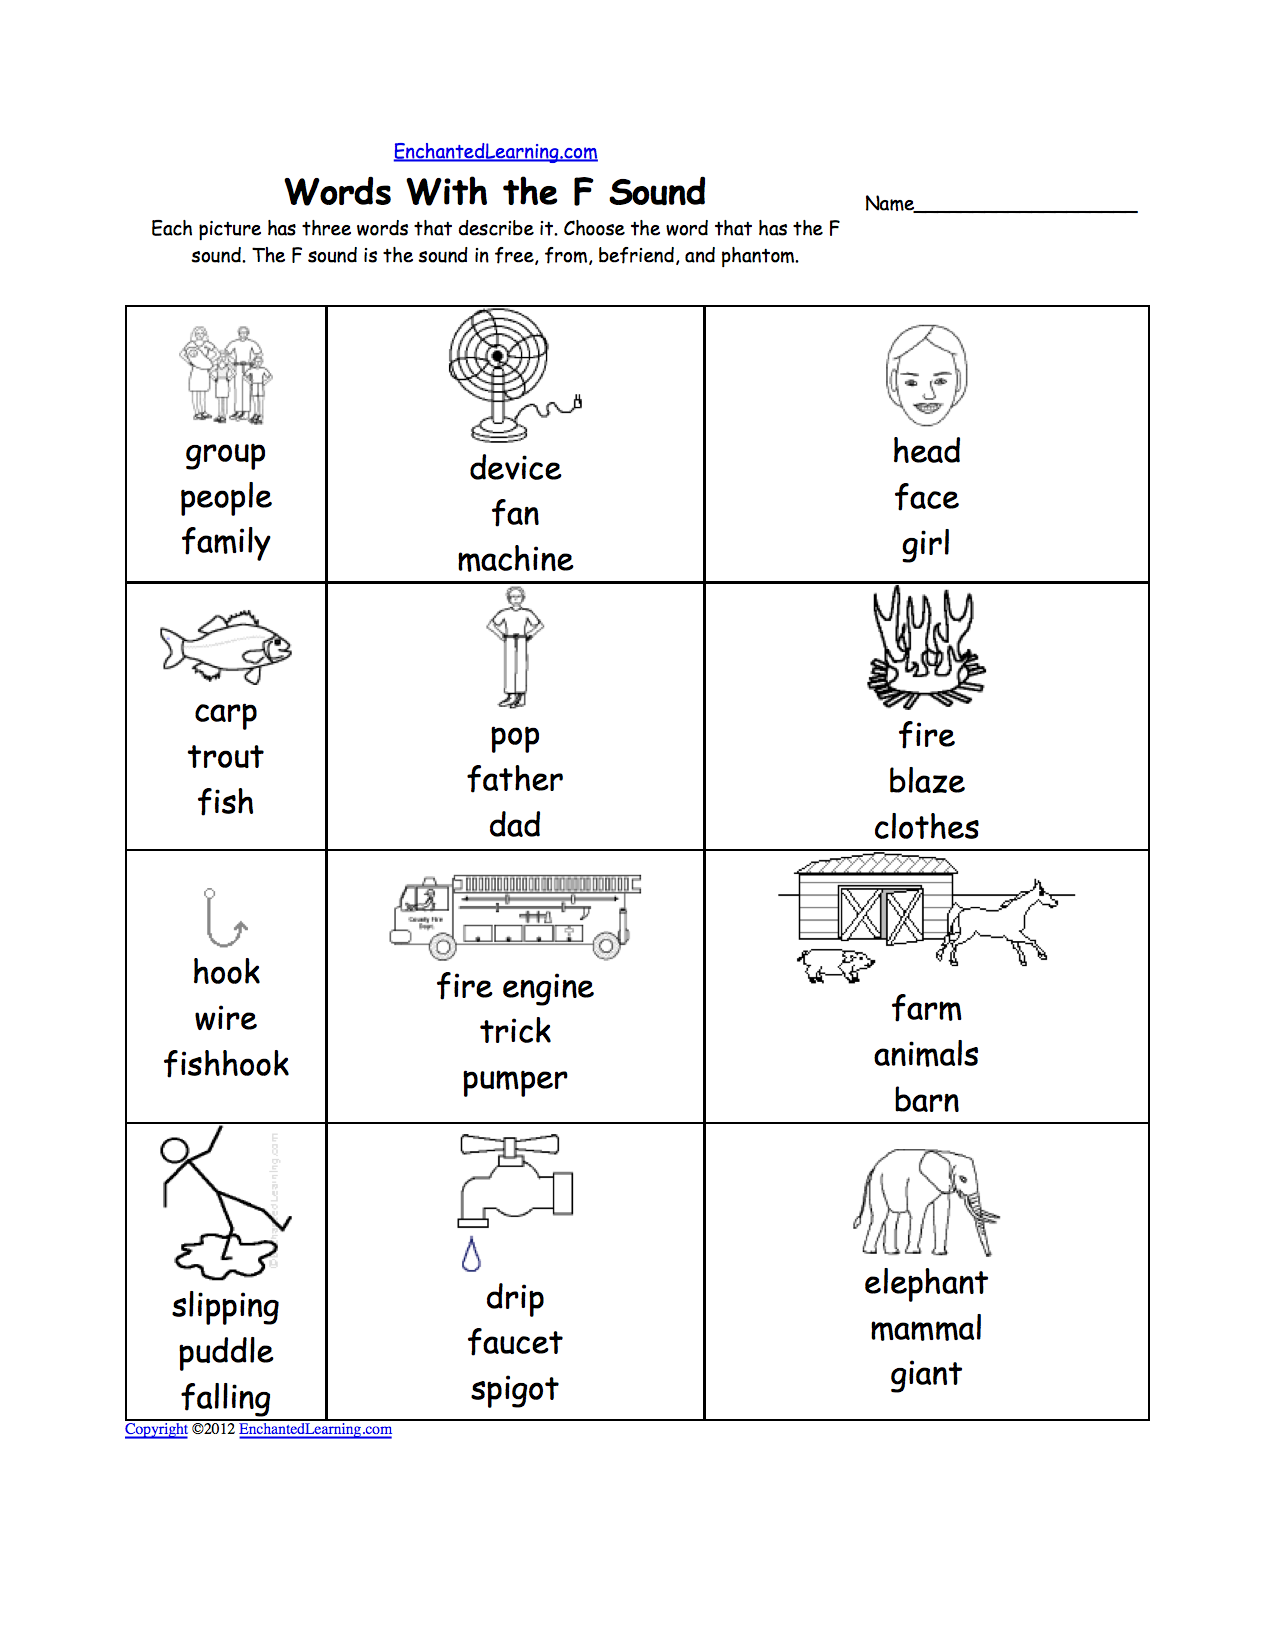 worksheet Ff Worksheets Phonics worksheet ff phonics worksheets thedanks for everyone letter f alphabet activities at enchantedlearning com phonics